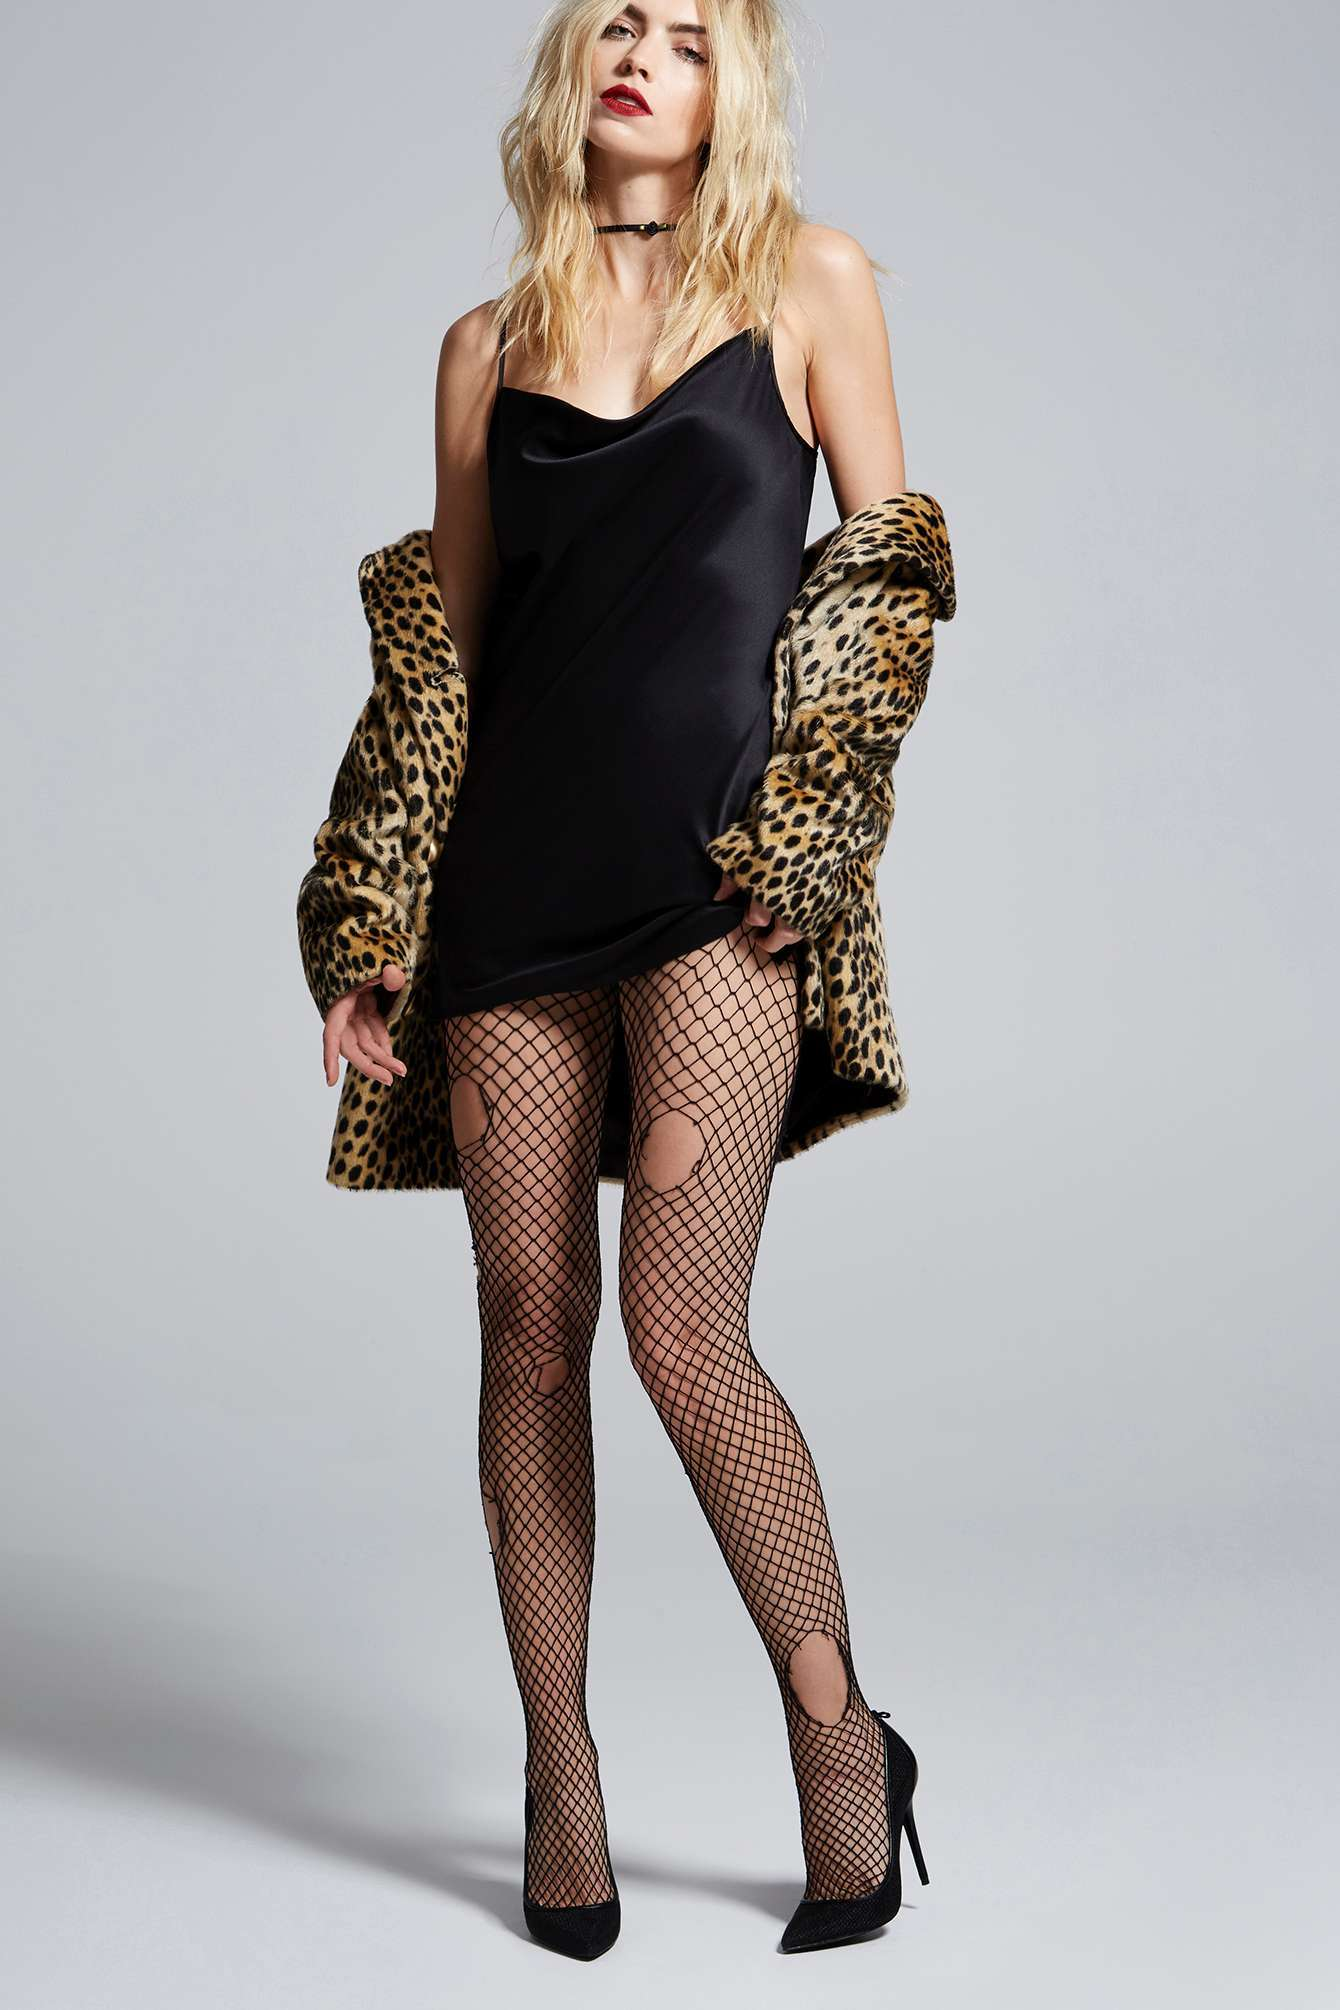 Courtney Love Nasty Gal